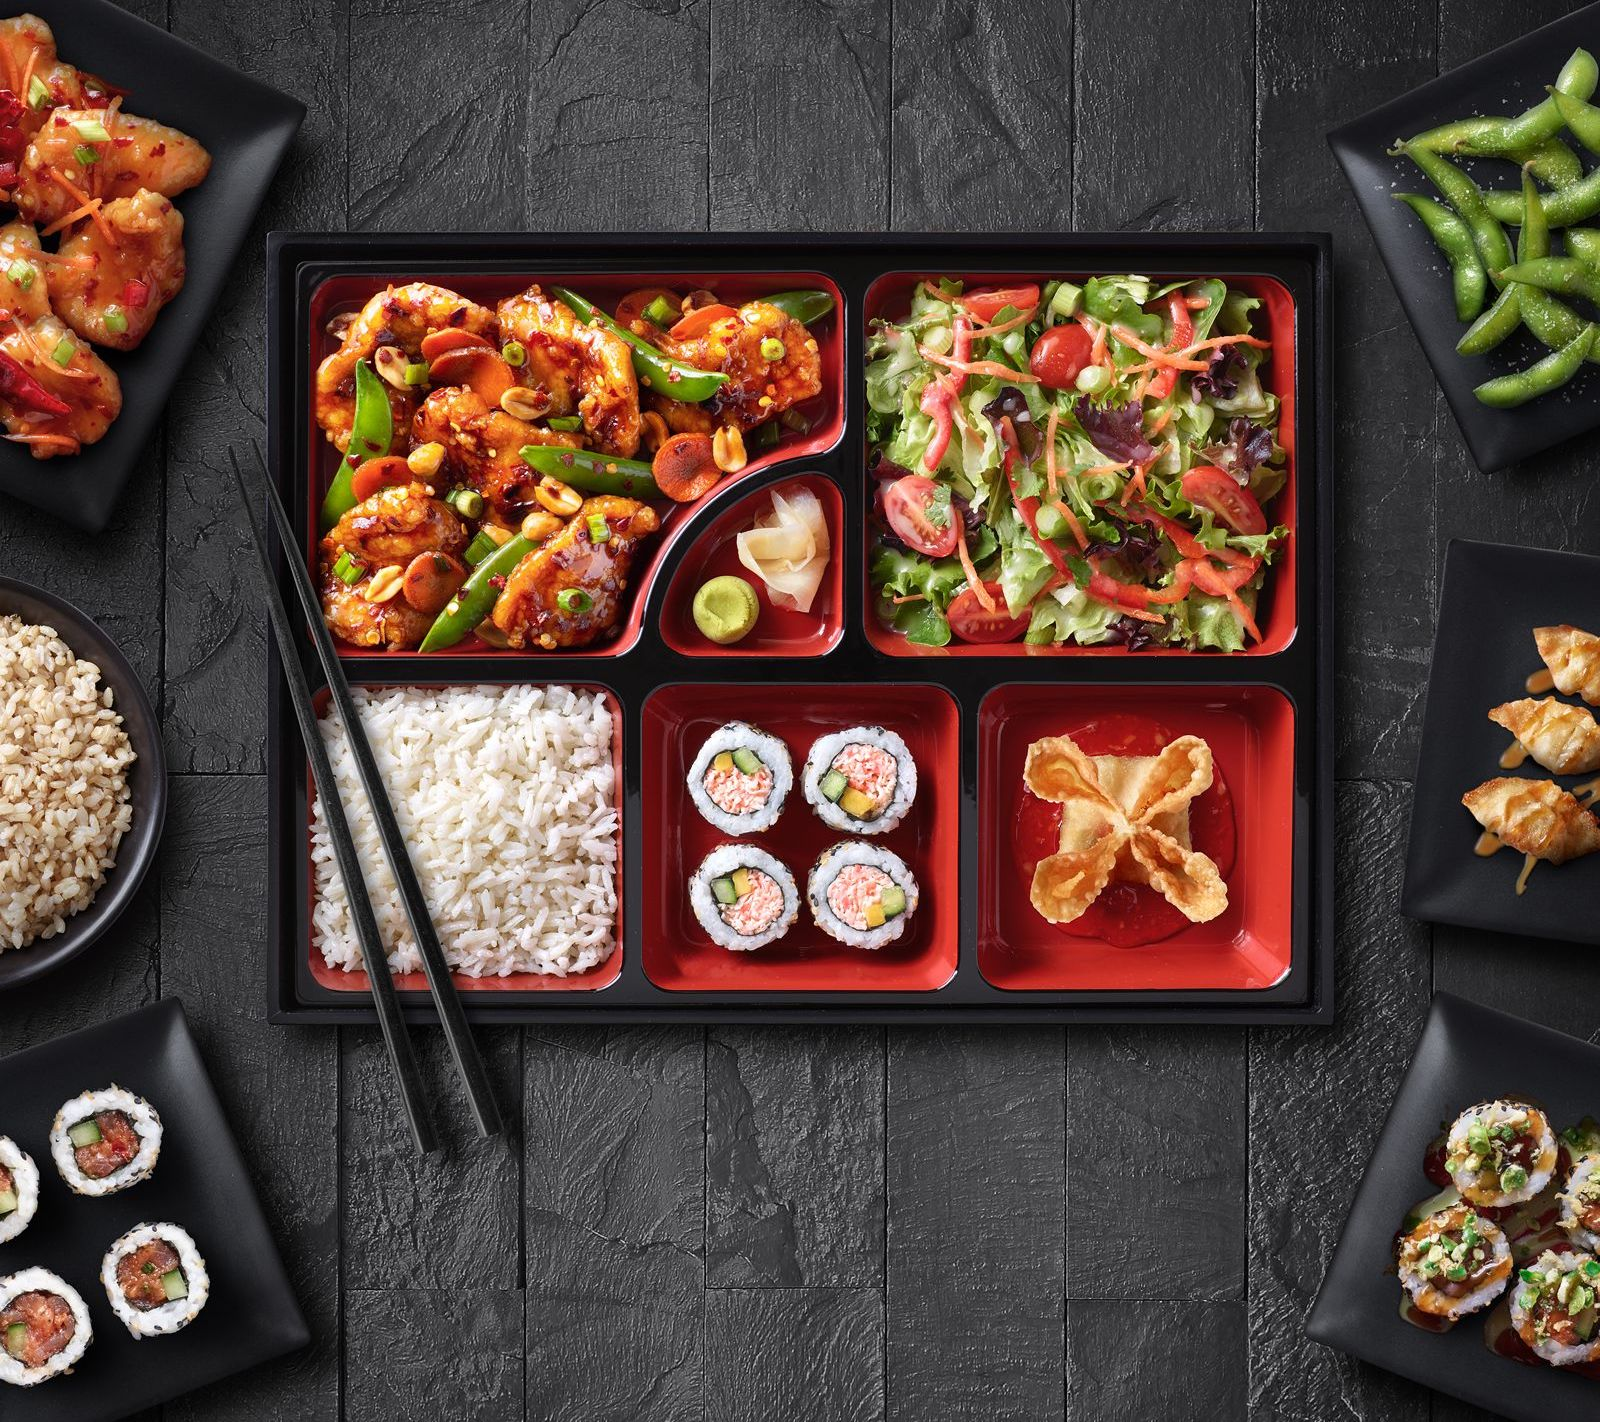 Background image for My Wei Rewards, the loyalty program of Pei Wei Asian Diner.